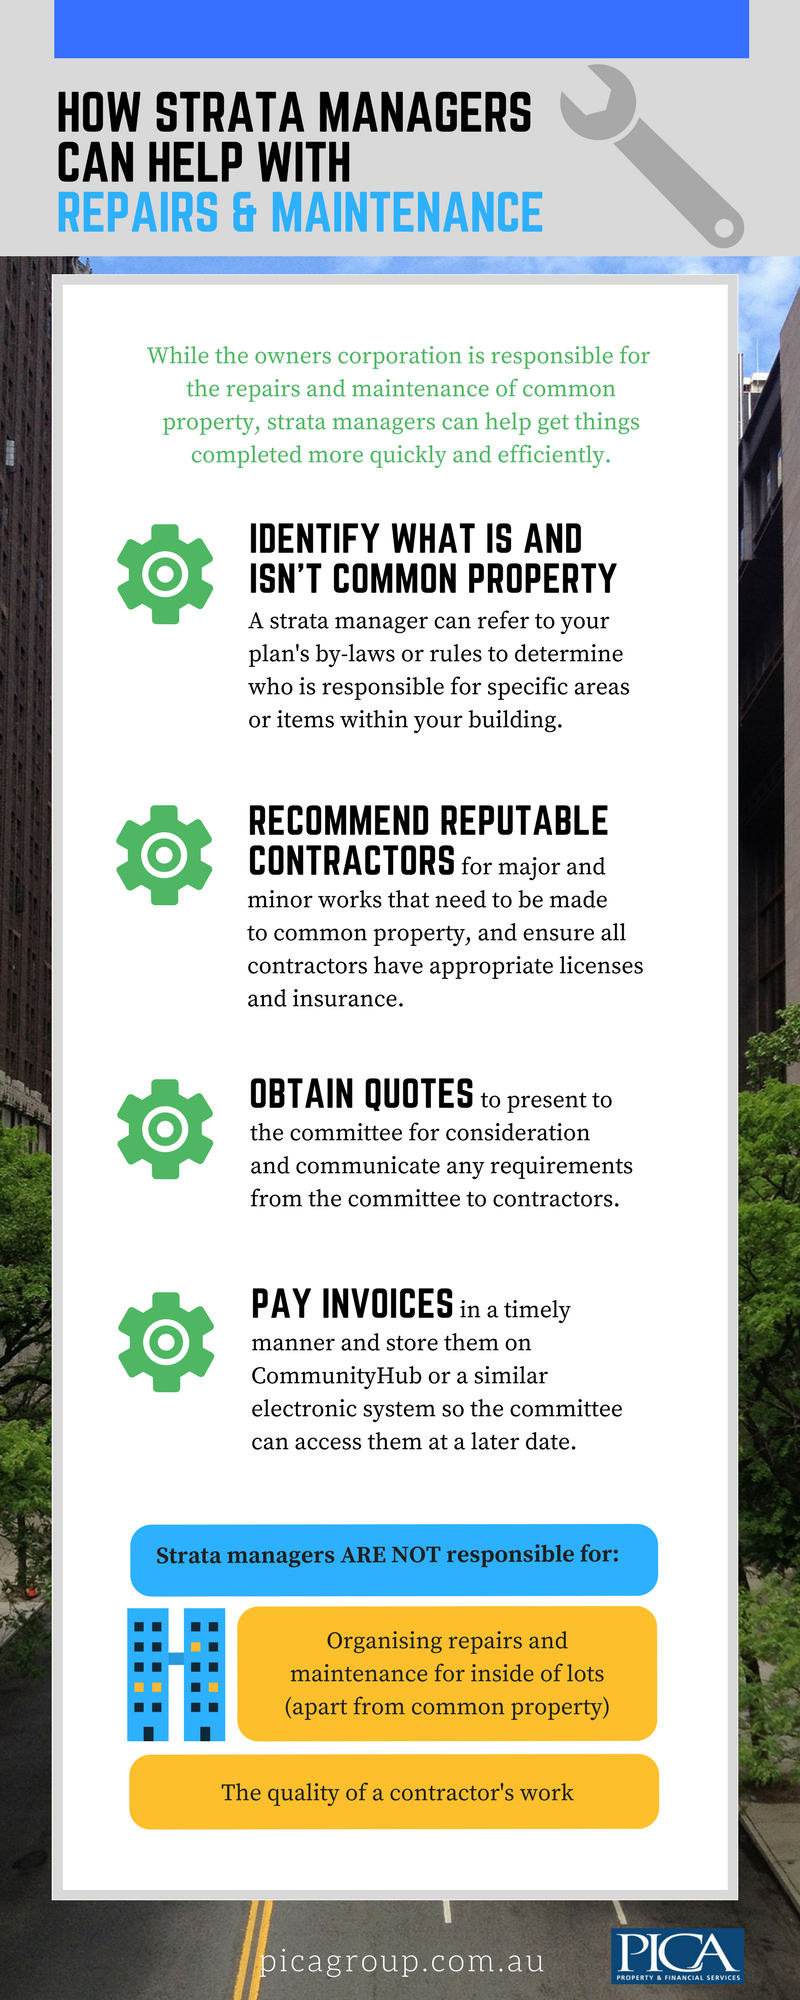 How a strata manager can help with repairs and maintenance